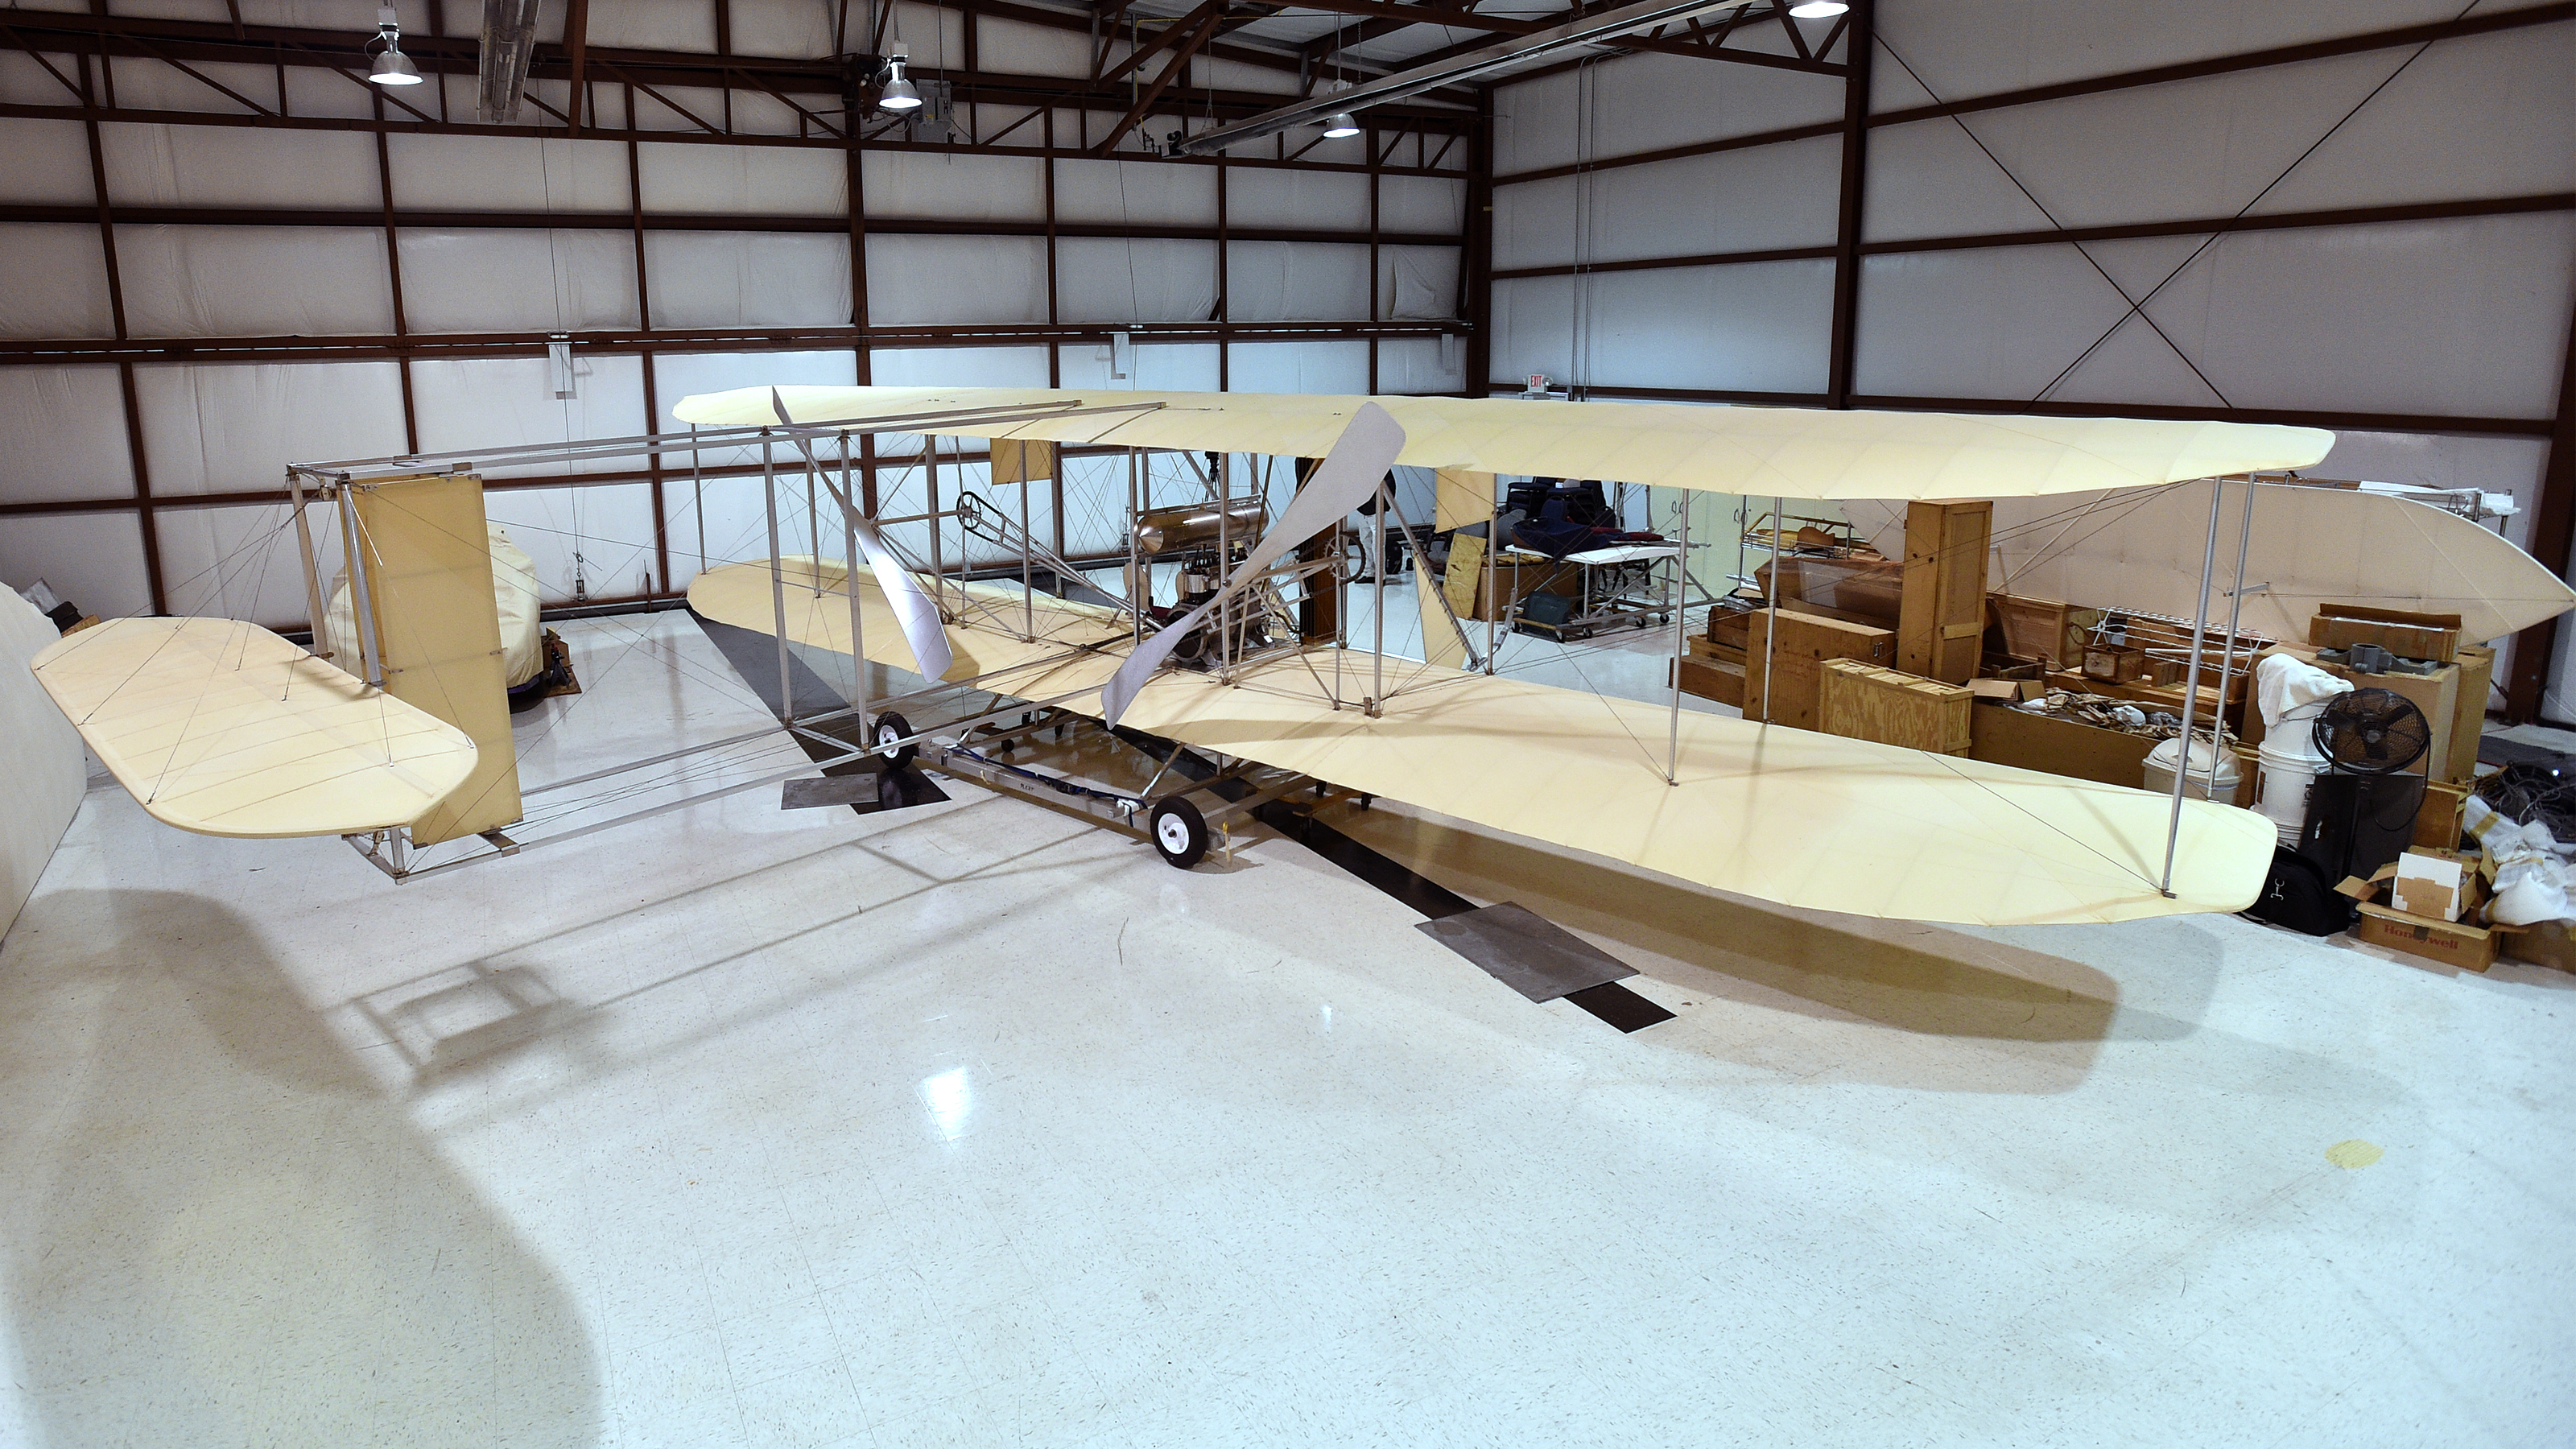 The Wright Experience Museum's Ken Hyde, a retired American Airlines pilot, uses science, technology, engineering, and math concepts to re-create a multitude of the Wright brothers' aircraft designs in Warrenton, Virginia. Photo by David Tulis.